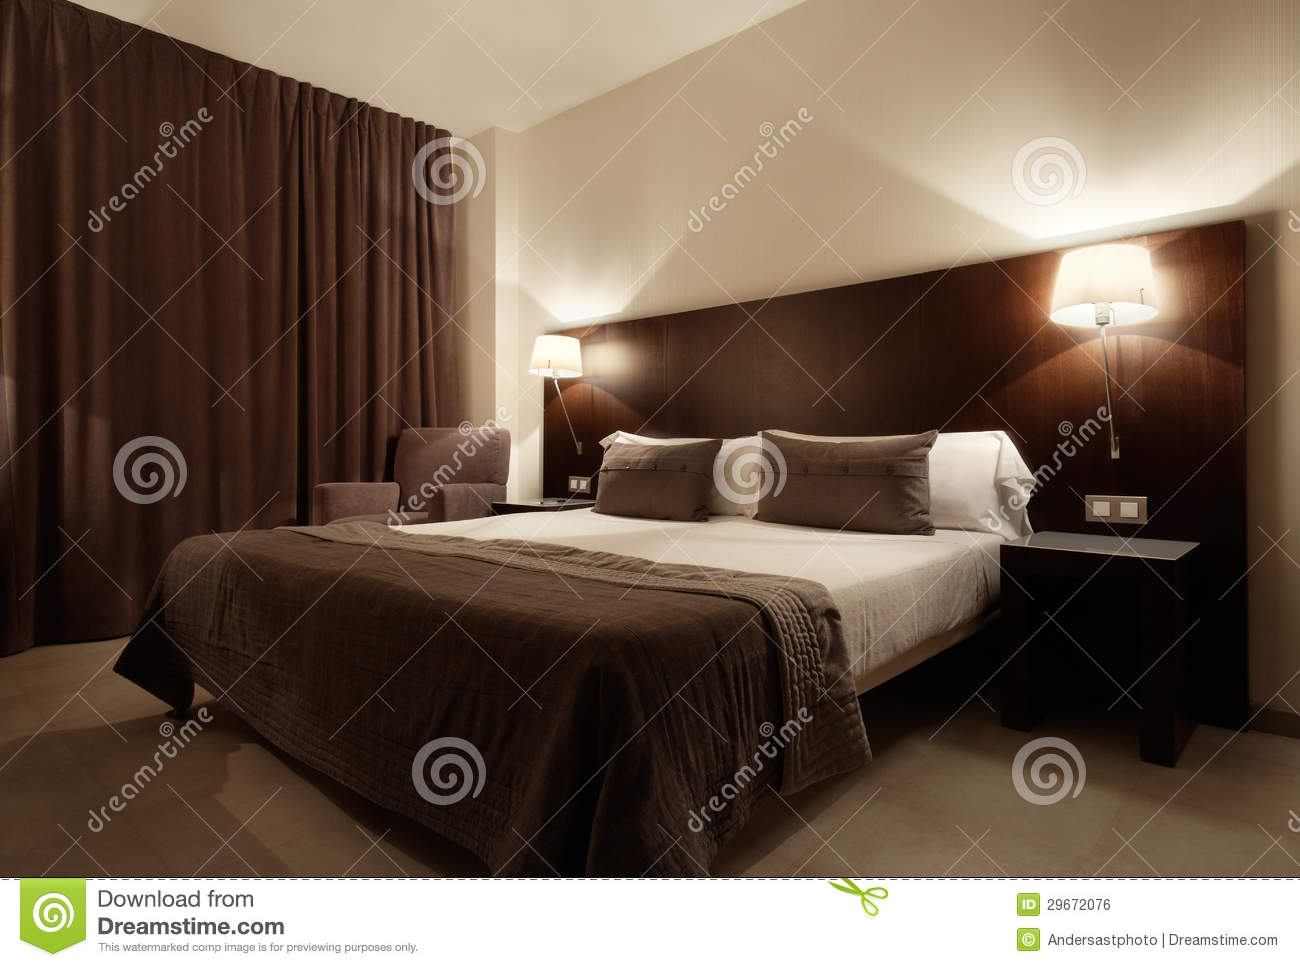 Chambre coucher de luxe moderne photo stock image for Decoration chambre a coucher contemporaine